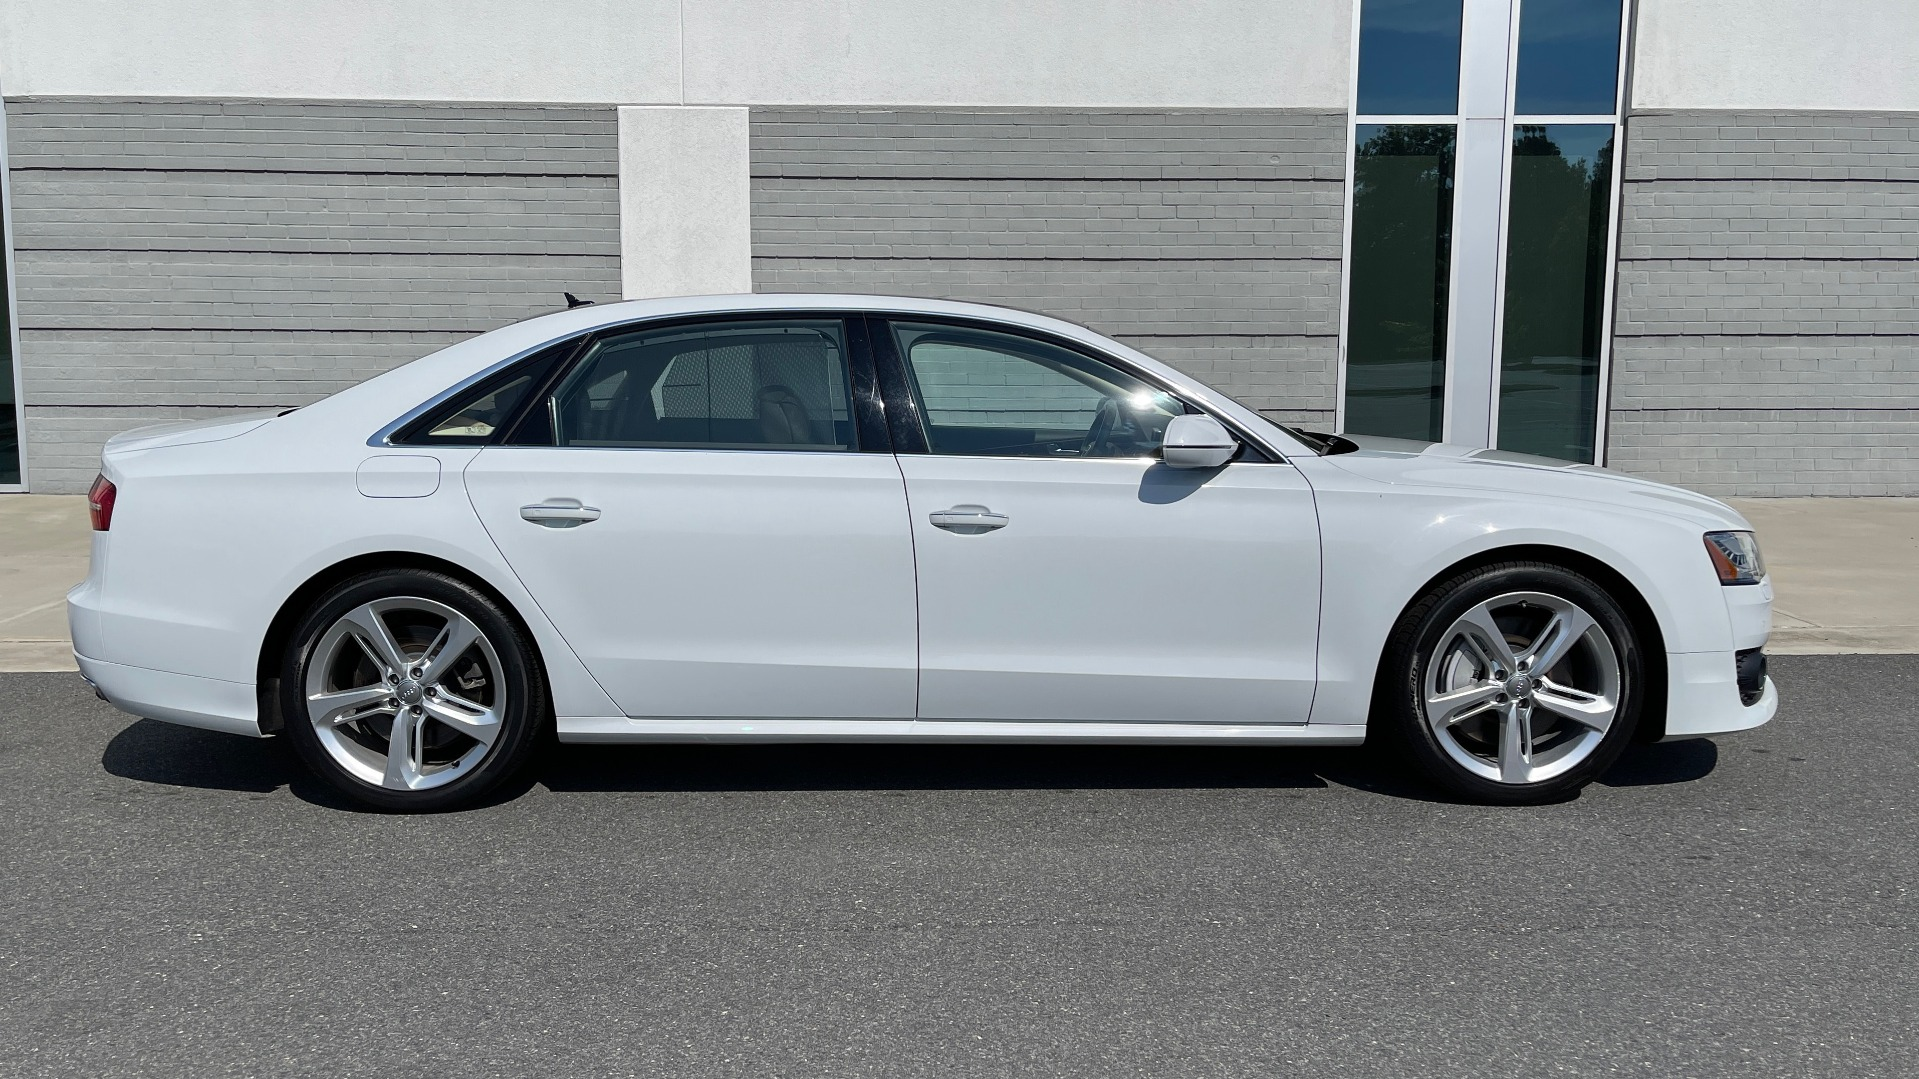 Used 2018 Audi A8 L SPORT 4.0T / EXECUTIVE PKG / NAV / BOSE / SUNROOF / REARVIEW for sale Sold at Formula Imports in Charlotte NC 28227 7